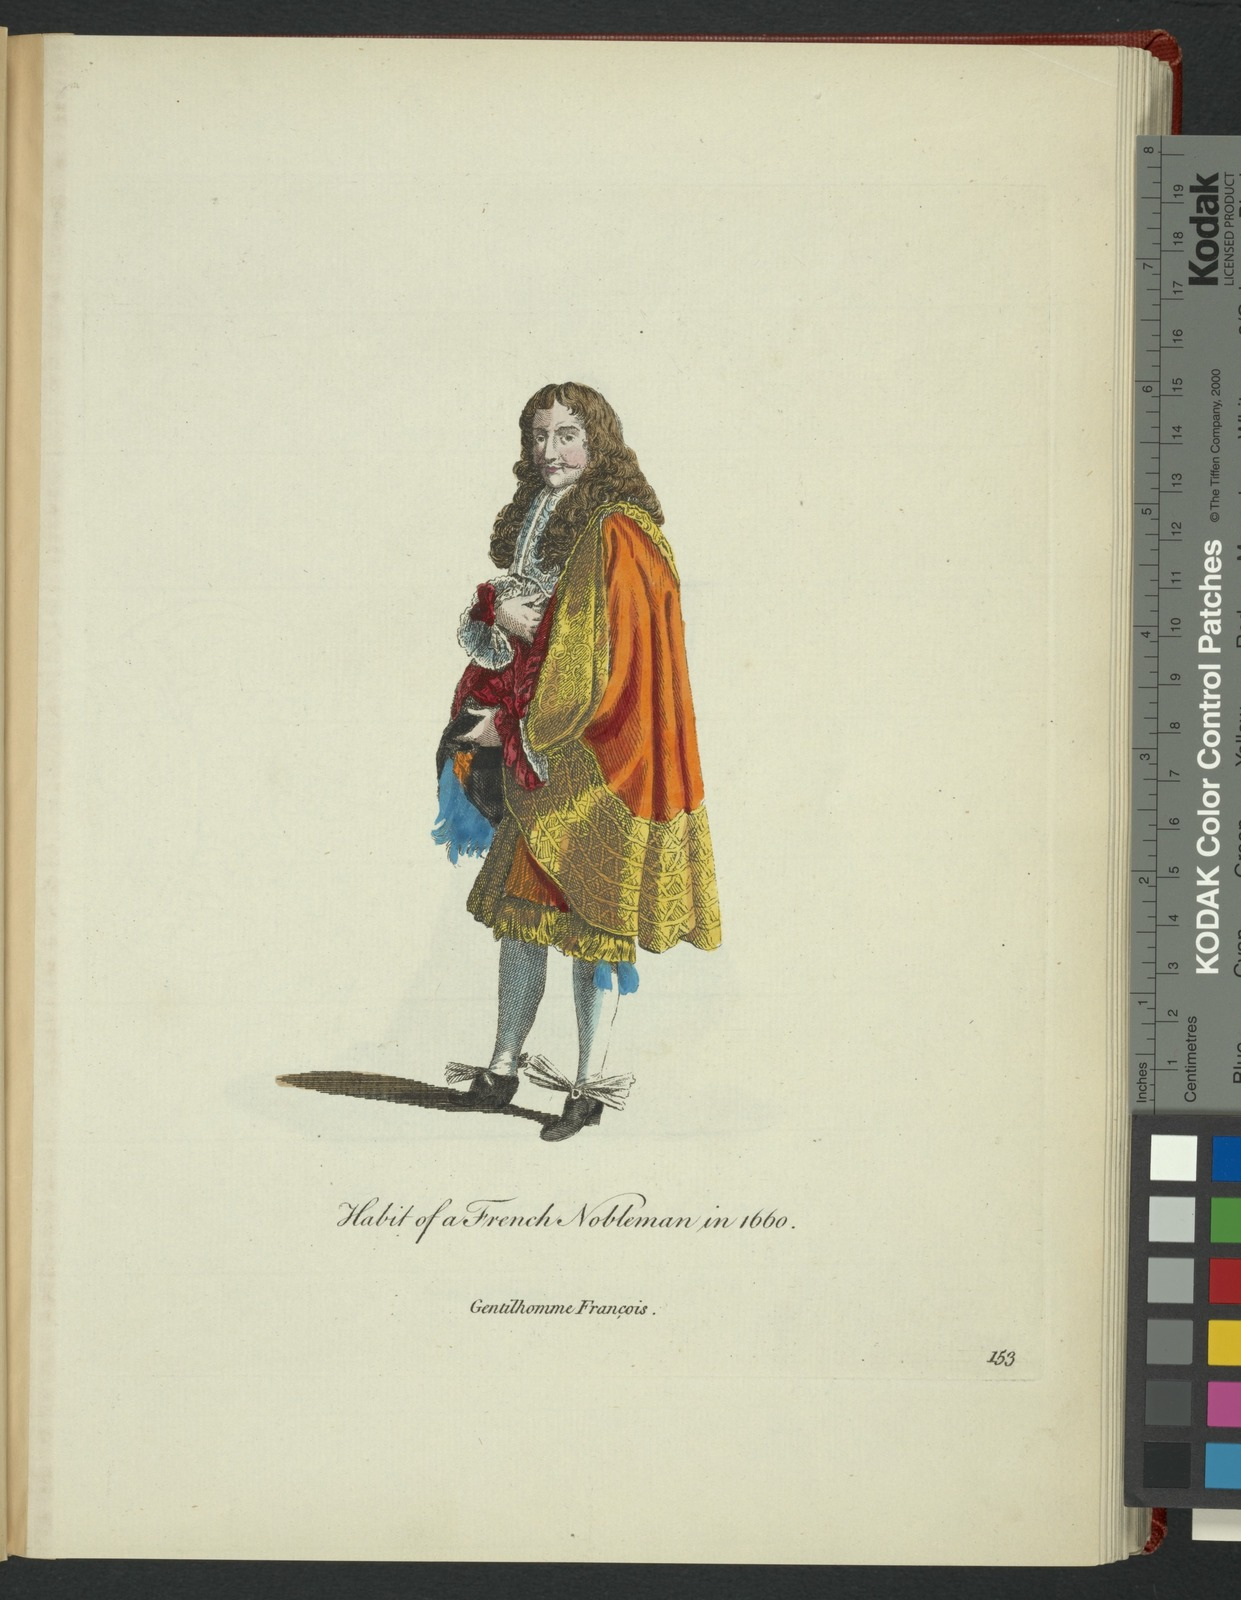 Habit of a French nobleman in 1660. Gentilhomme François.